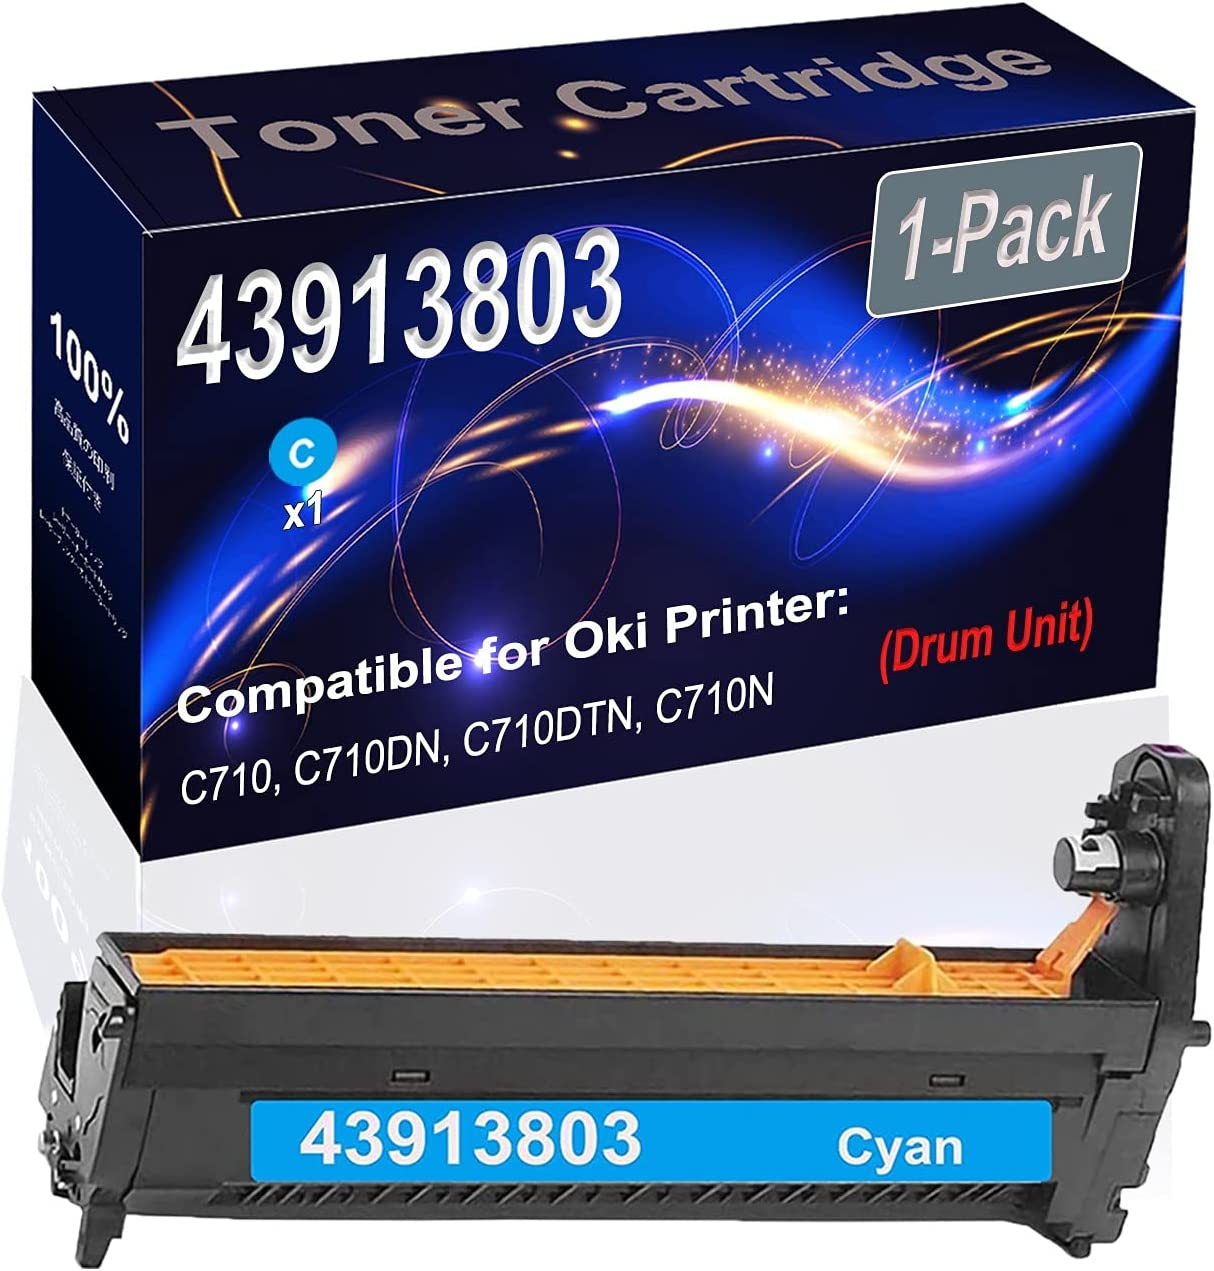 Compatible Drum Unit Replacement for 1-Pack (Cyan) Oki 43913803 Drum Unit Fit for Oki C710, C710DN, C710DTN, C710N Printer (High Capacity)